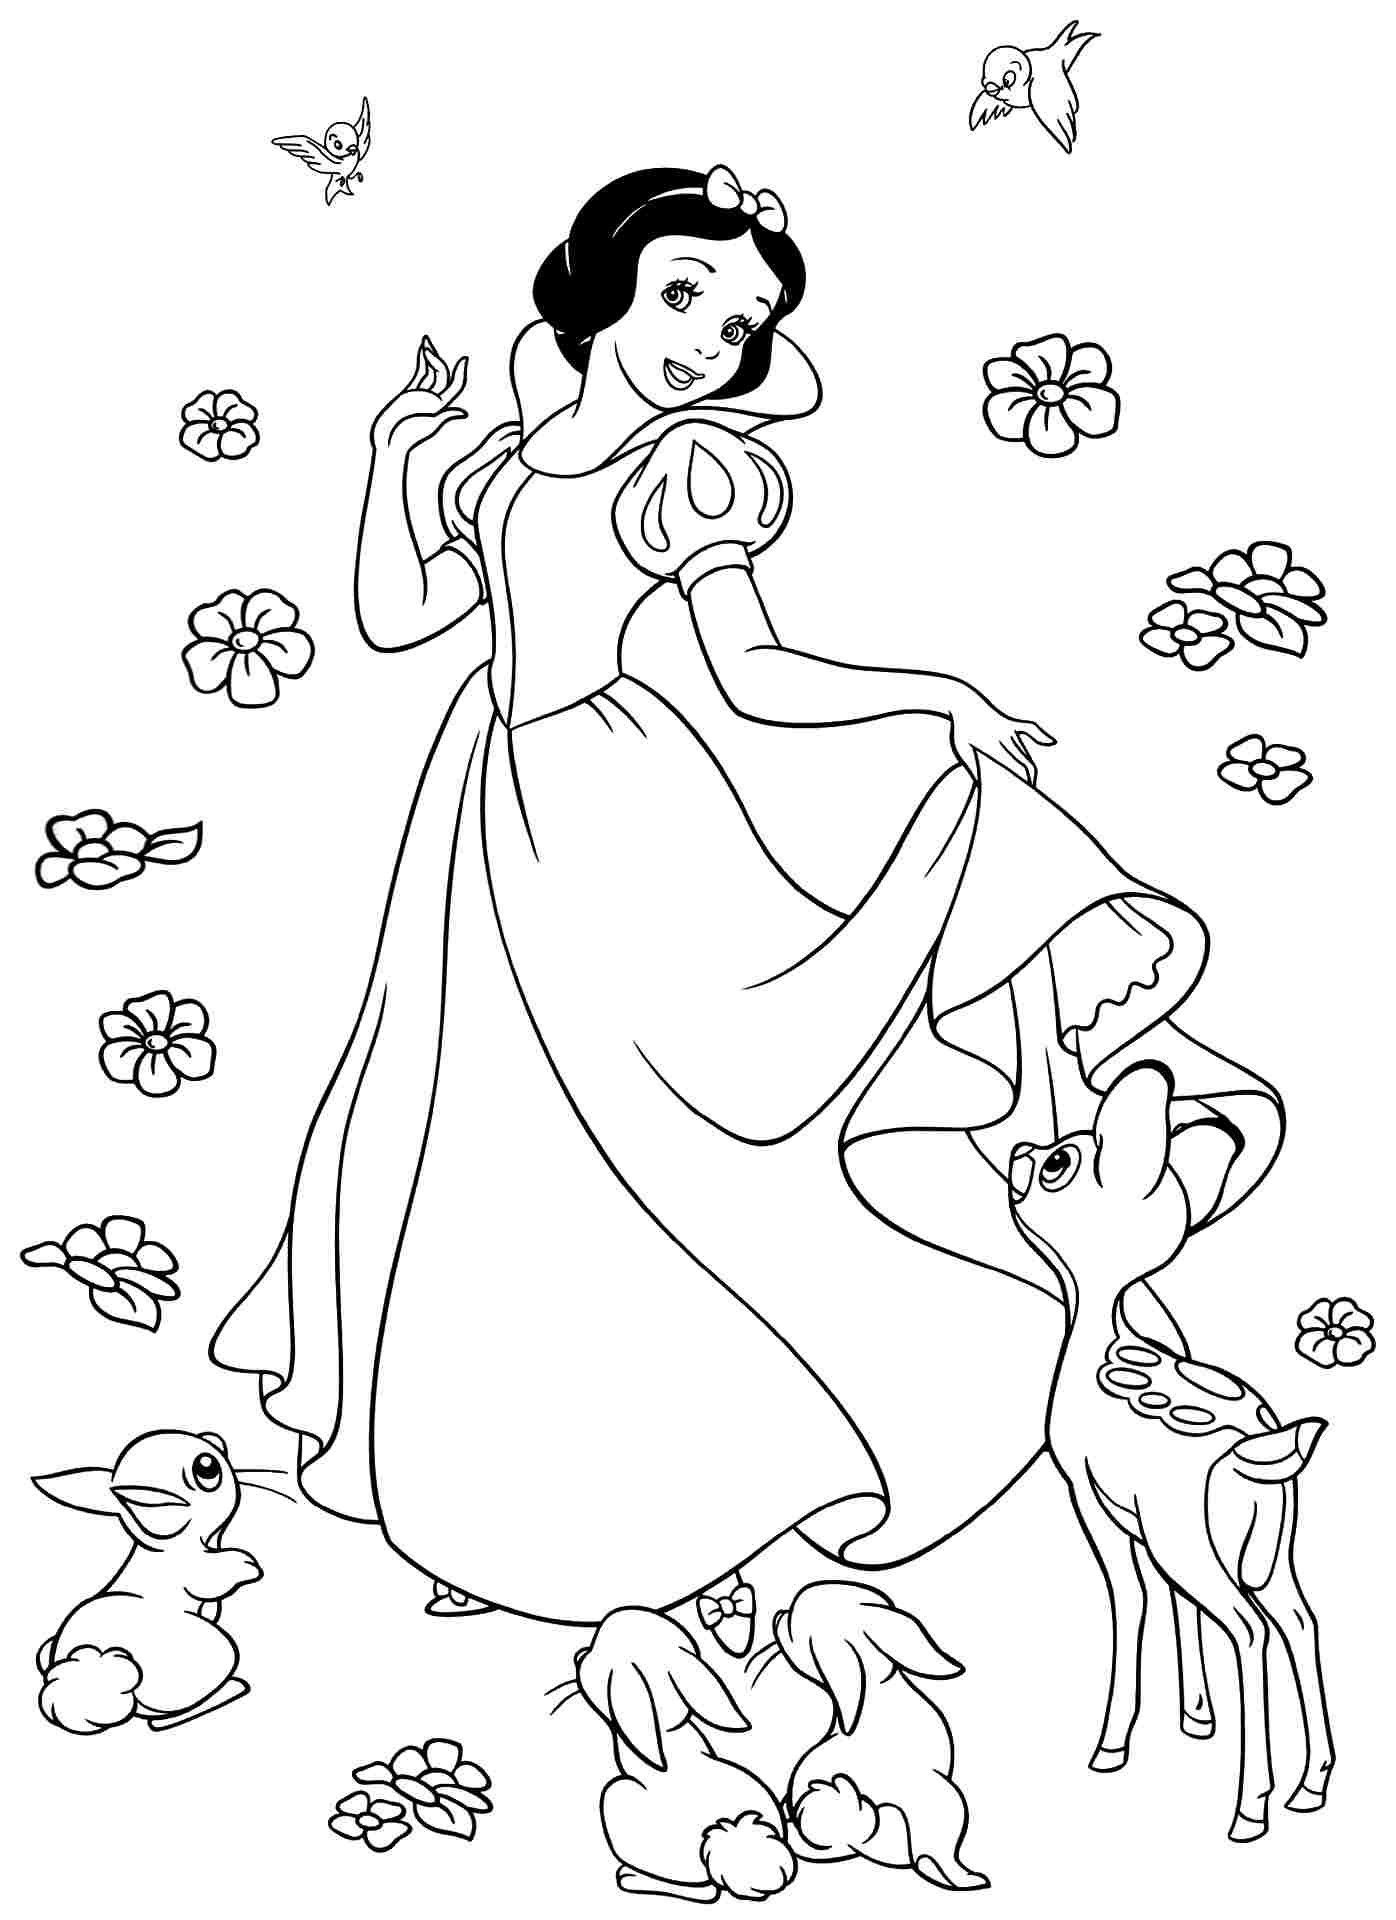 Snow White Coloring Pages Snow White Coloring Pages Disney